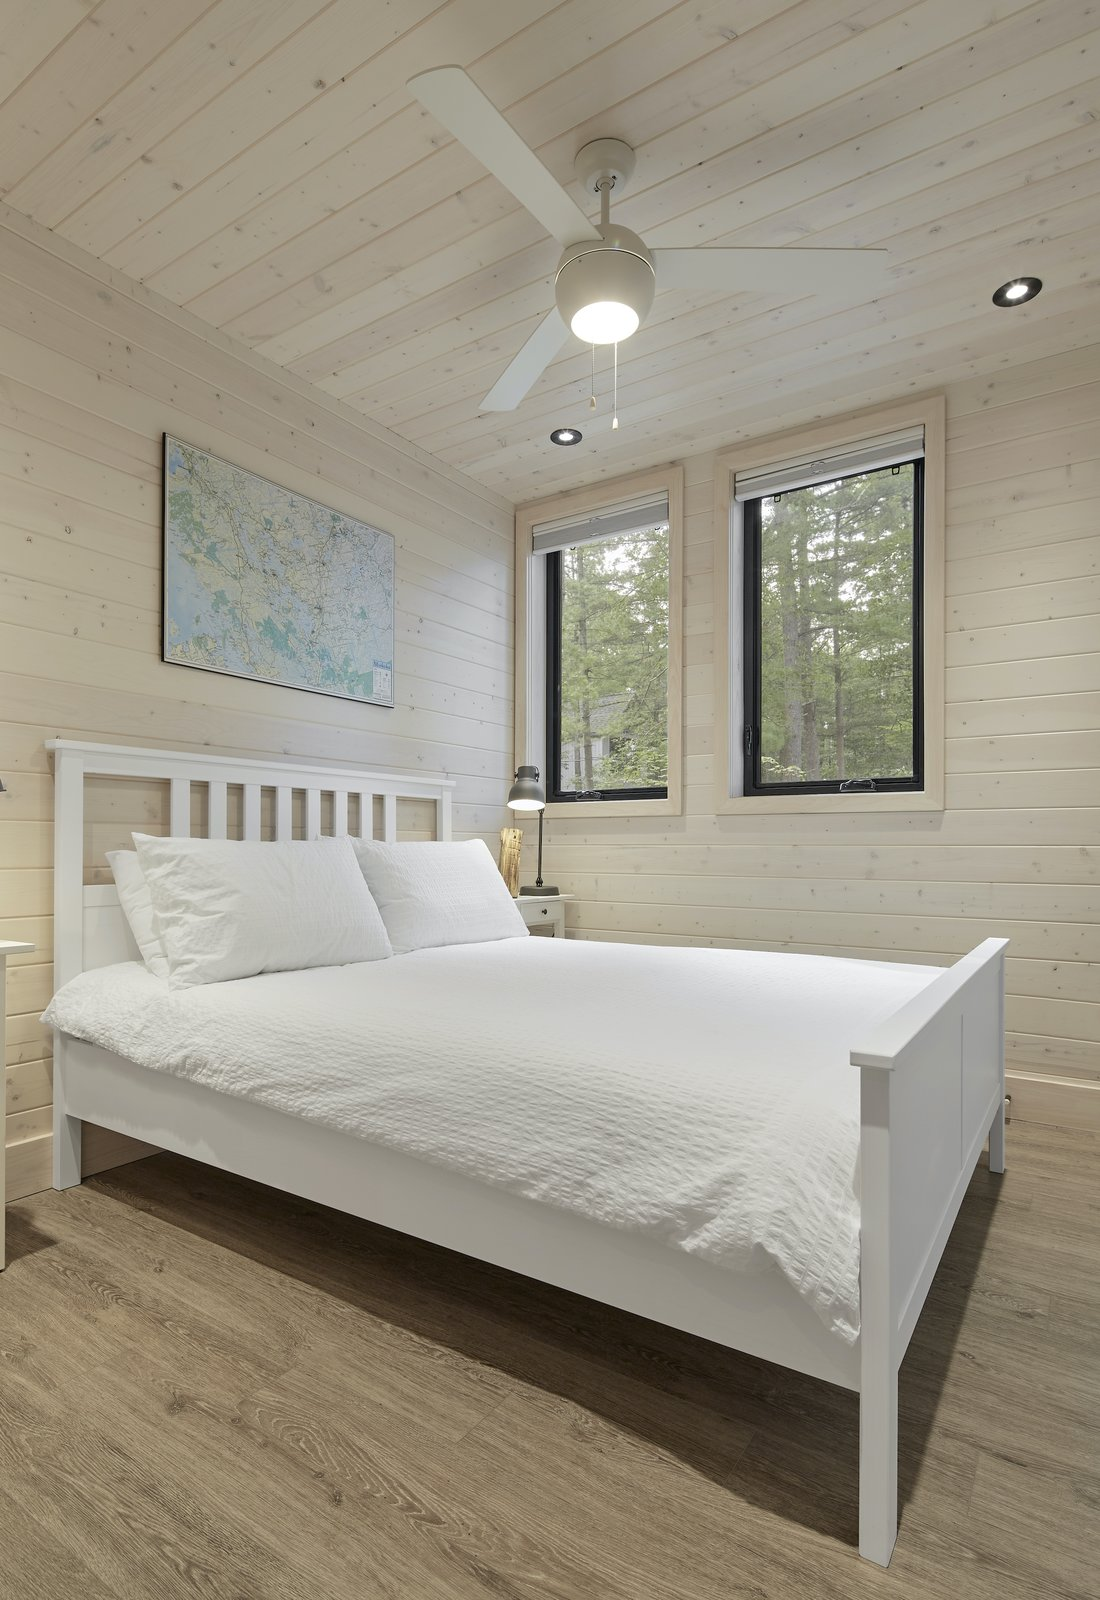 Bedroom of Kahshe Lake Cottage by Solares Architecture.